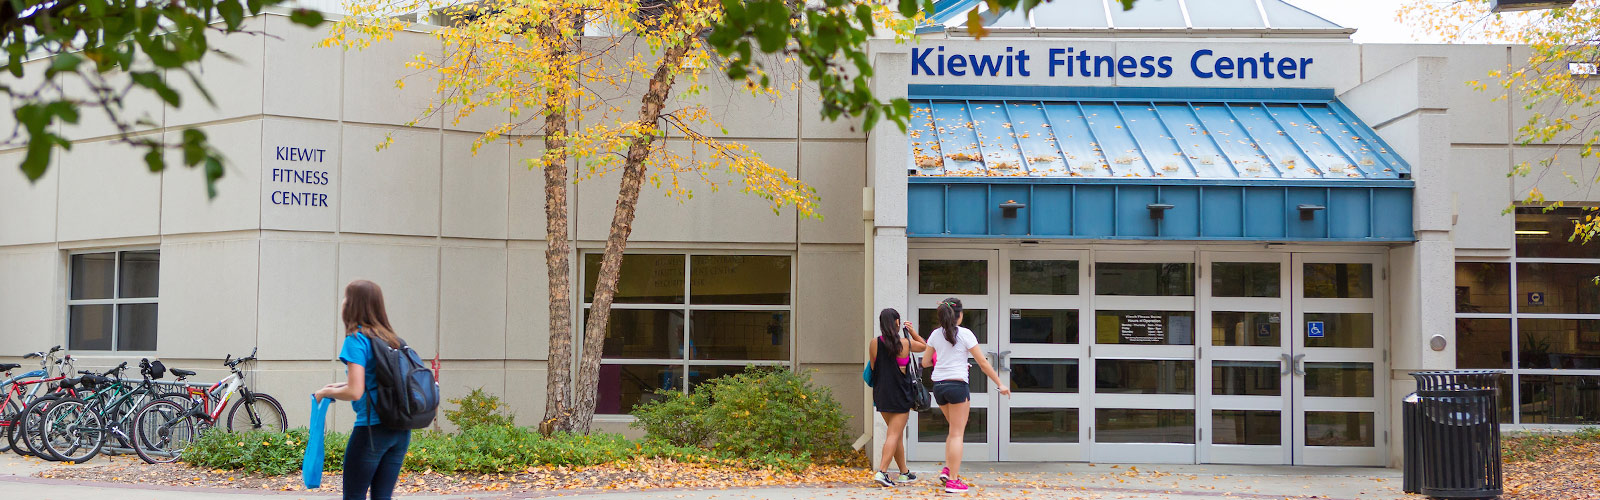 outside view of Kiewit Fitness Center